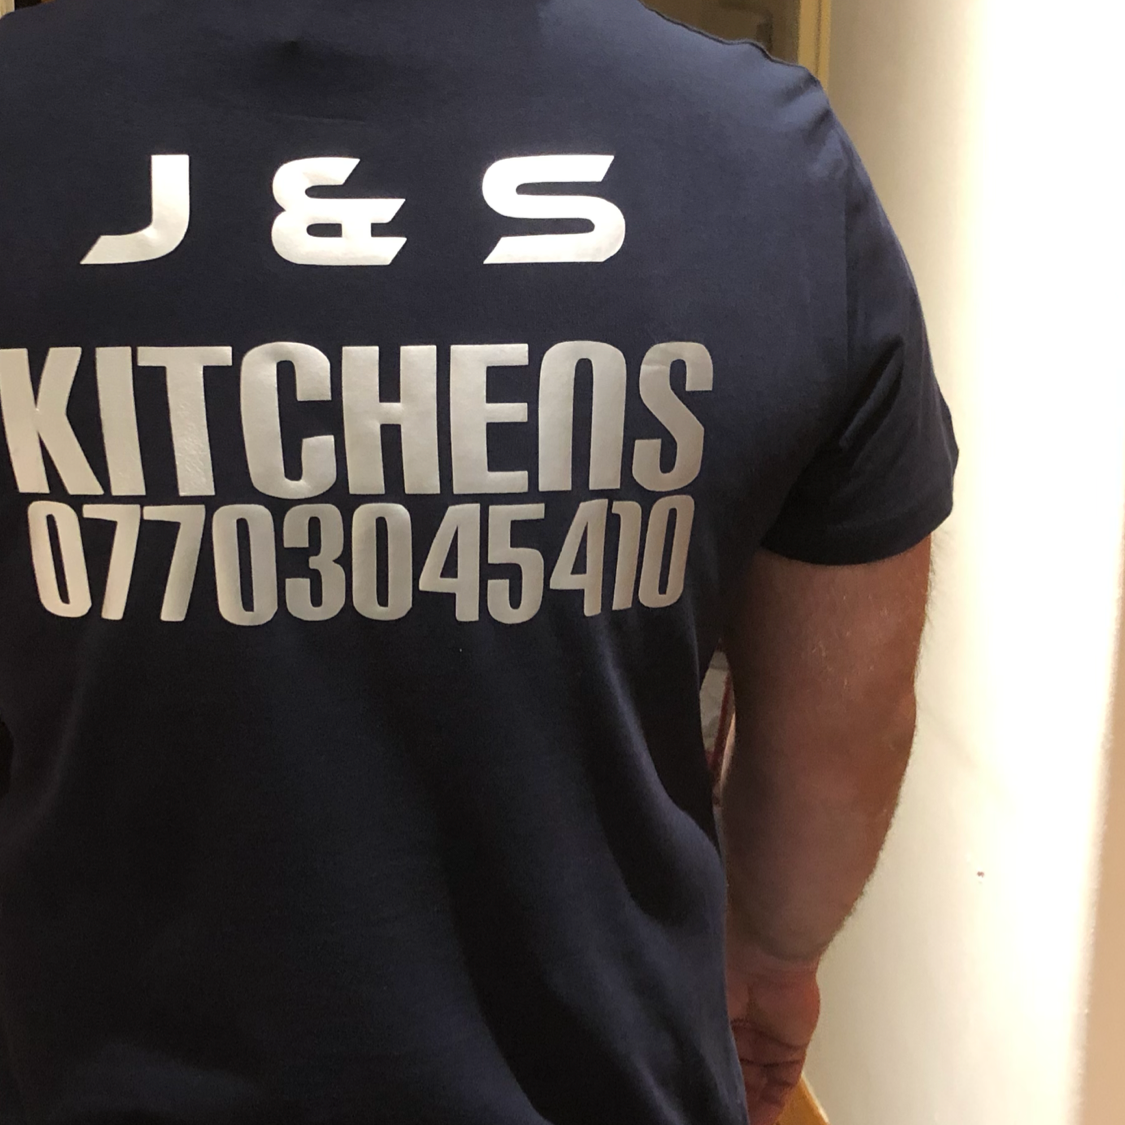 J and S Kitchens